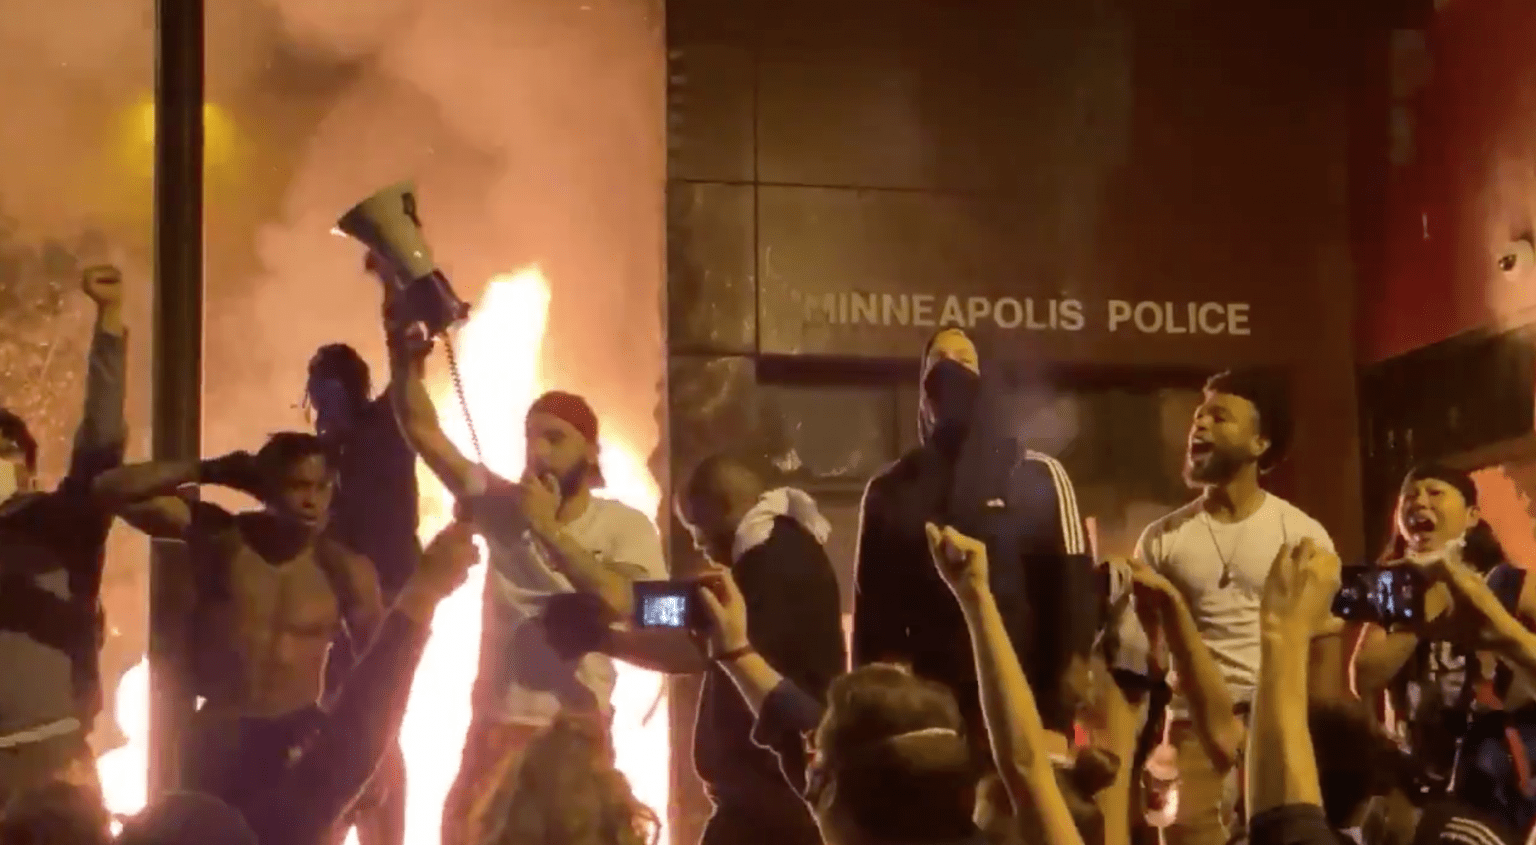 Biden campaign staffers donate to fund paying bail for rioters who have been arrested